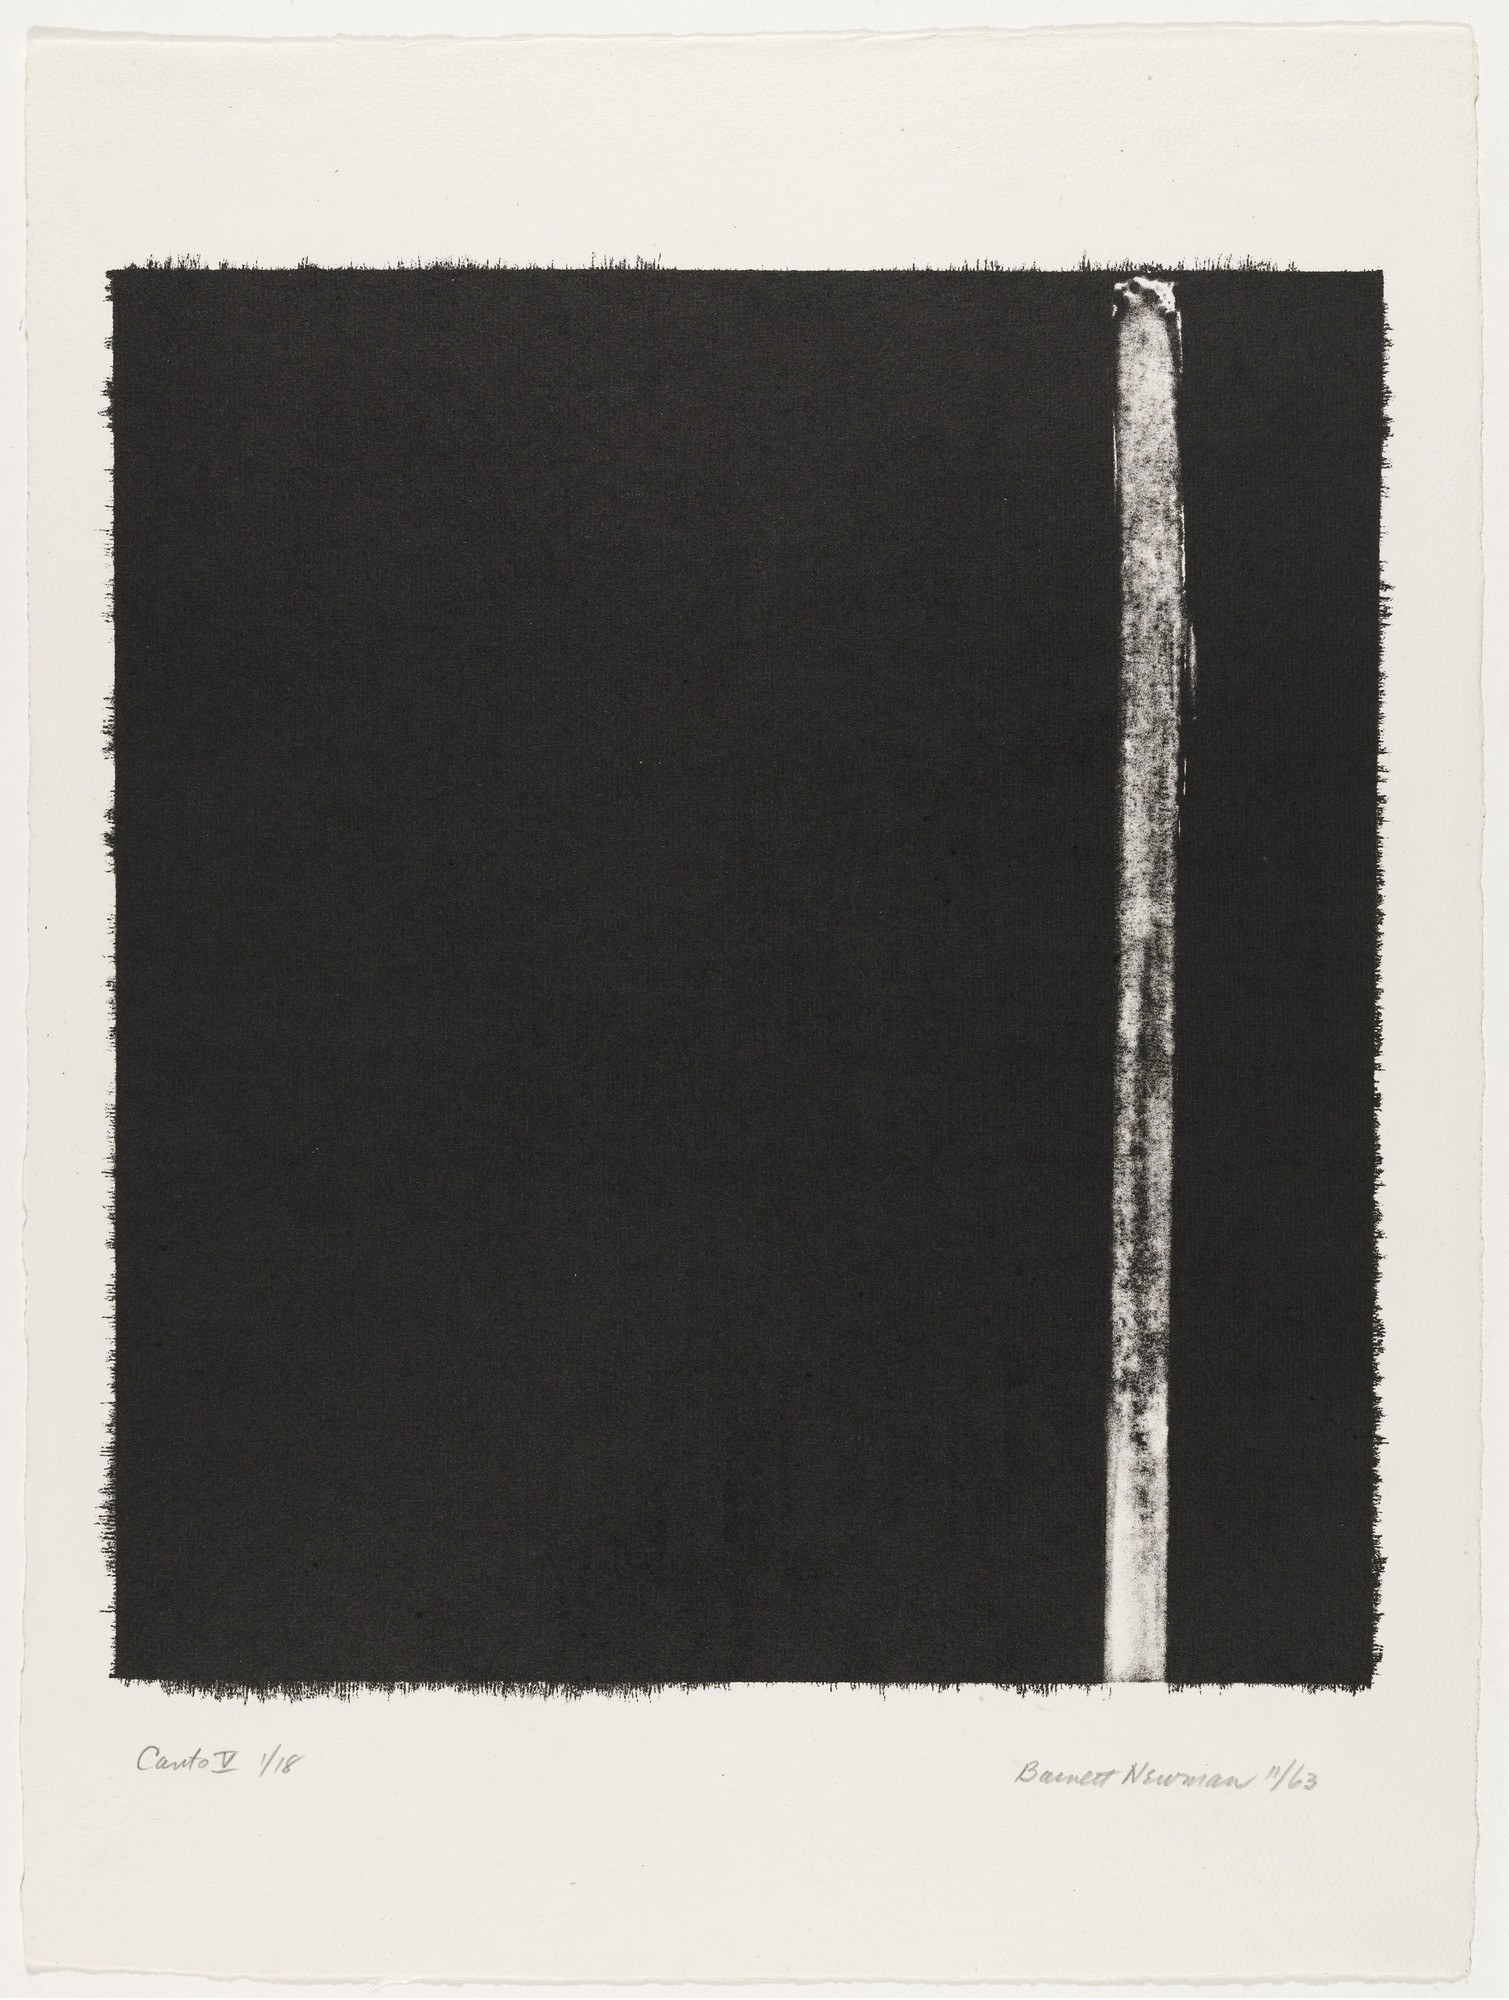 Barnett Newman. Canto V from 18 Cantos. 1963